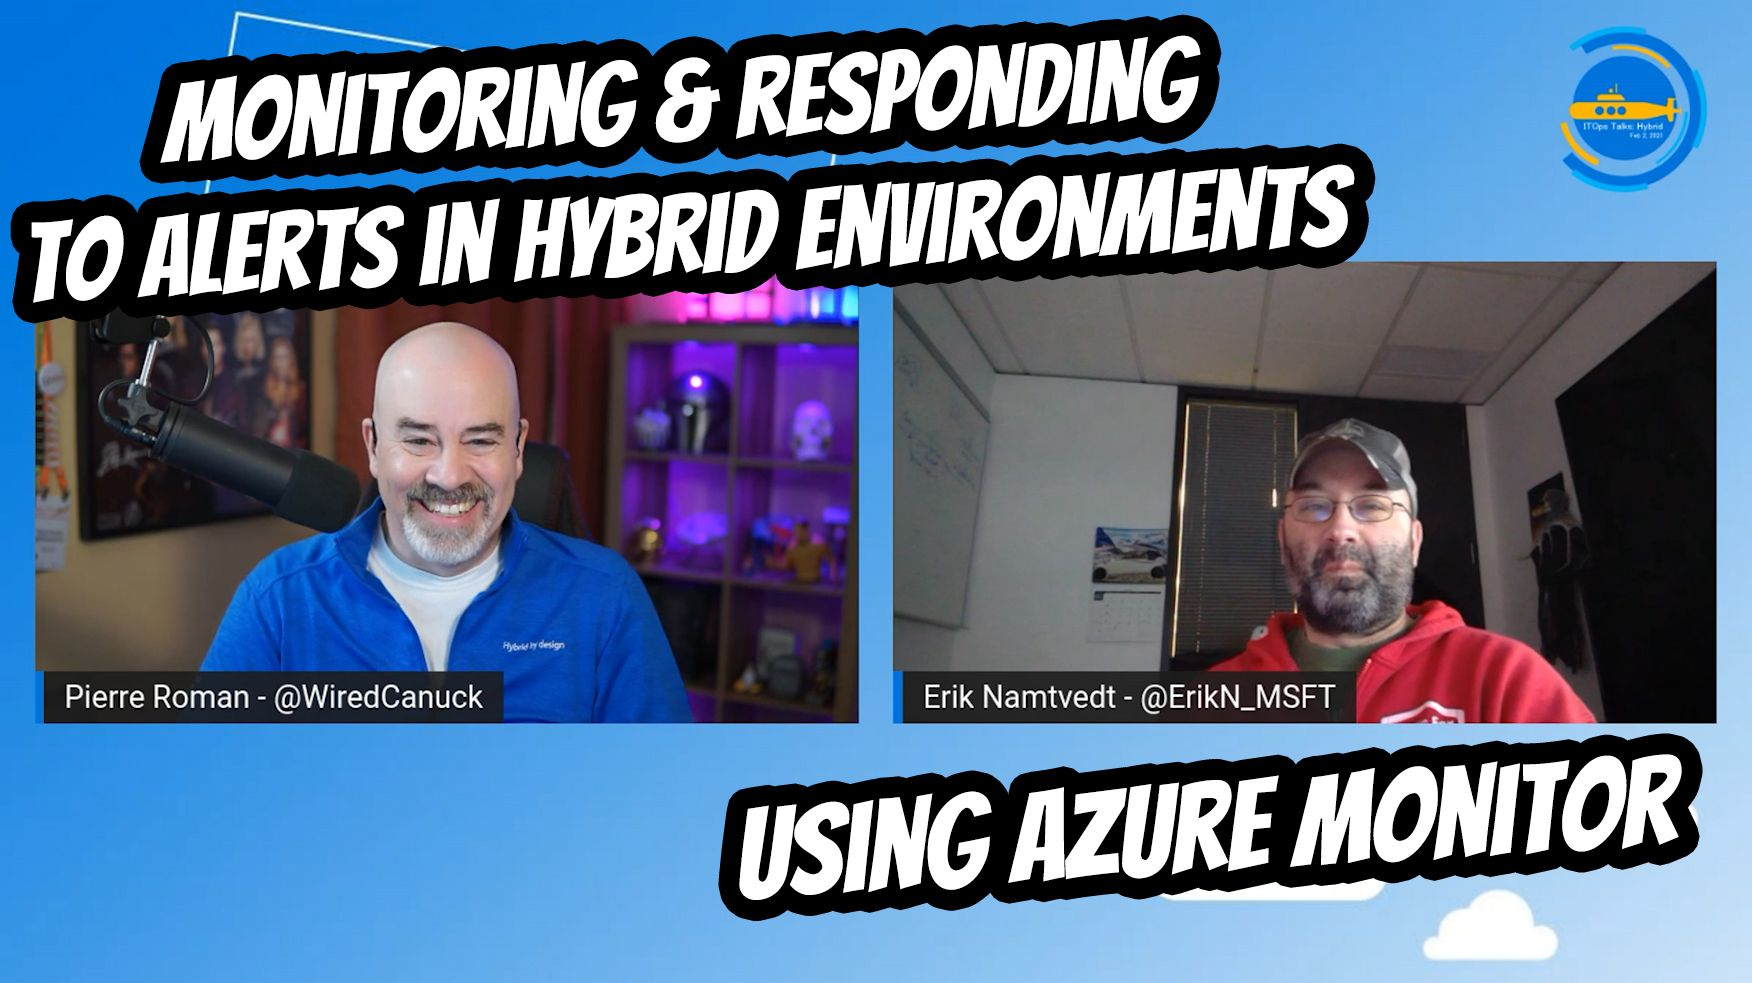 OPS116: Monitoring and Responding to alerts in hybrid environments using Azure Monitor